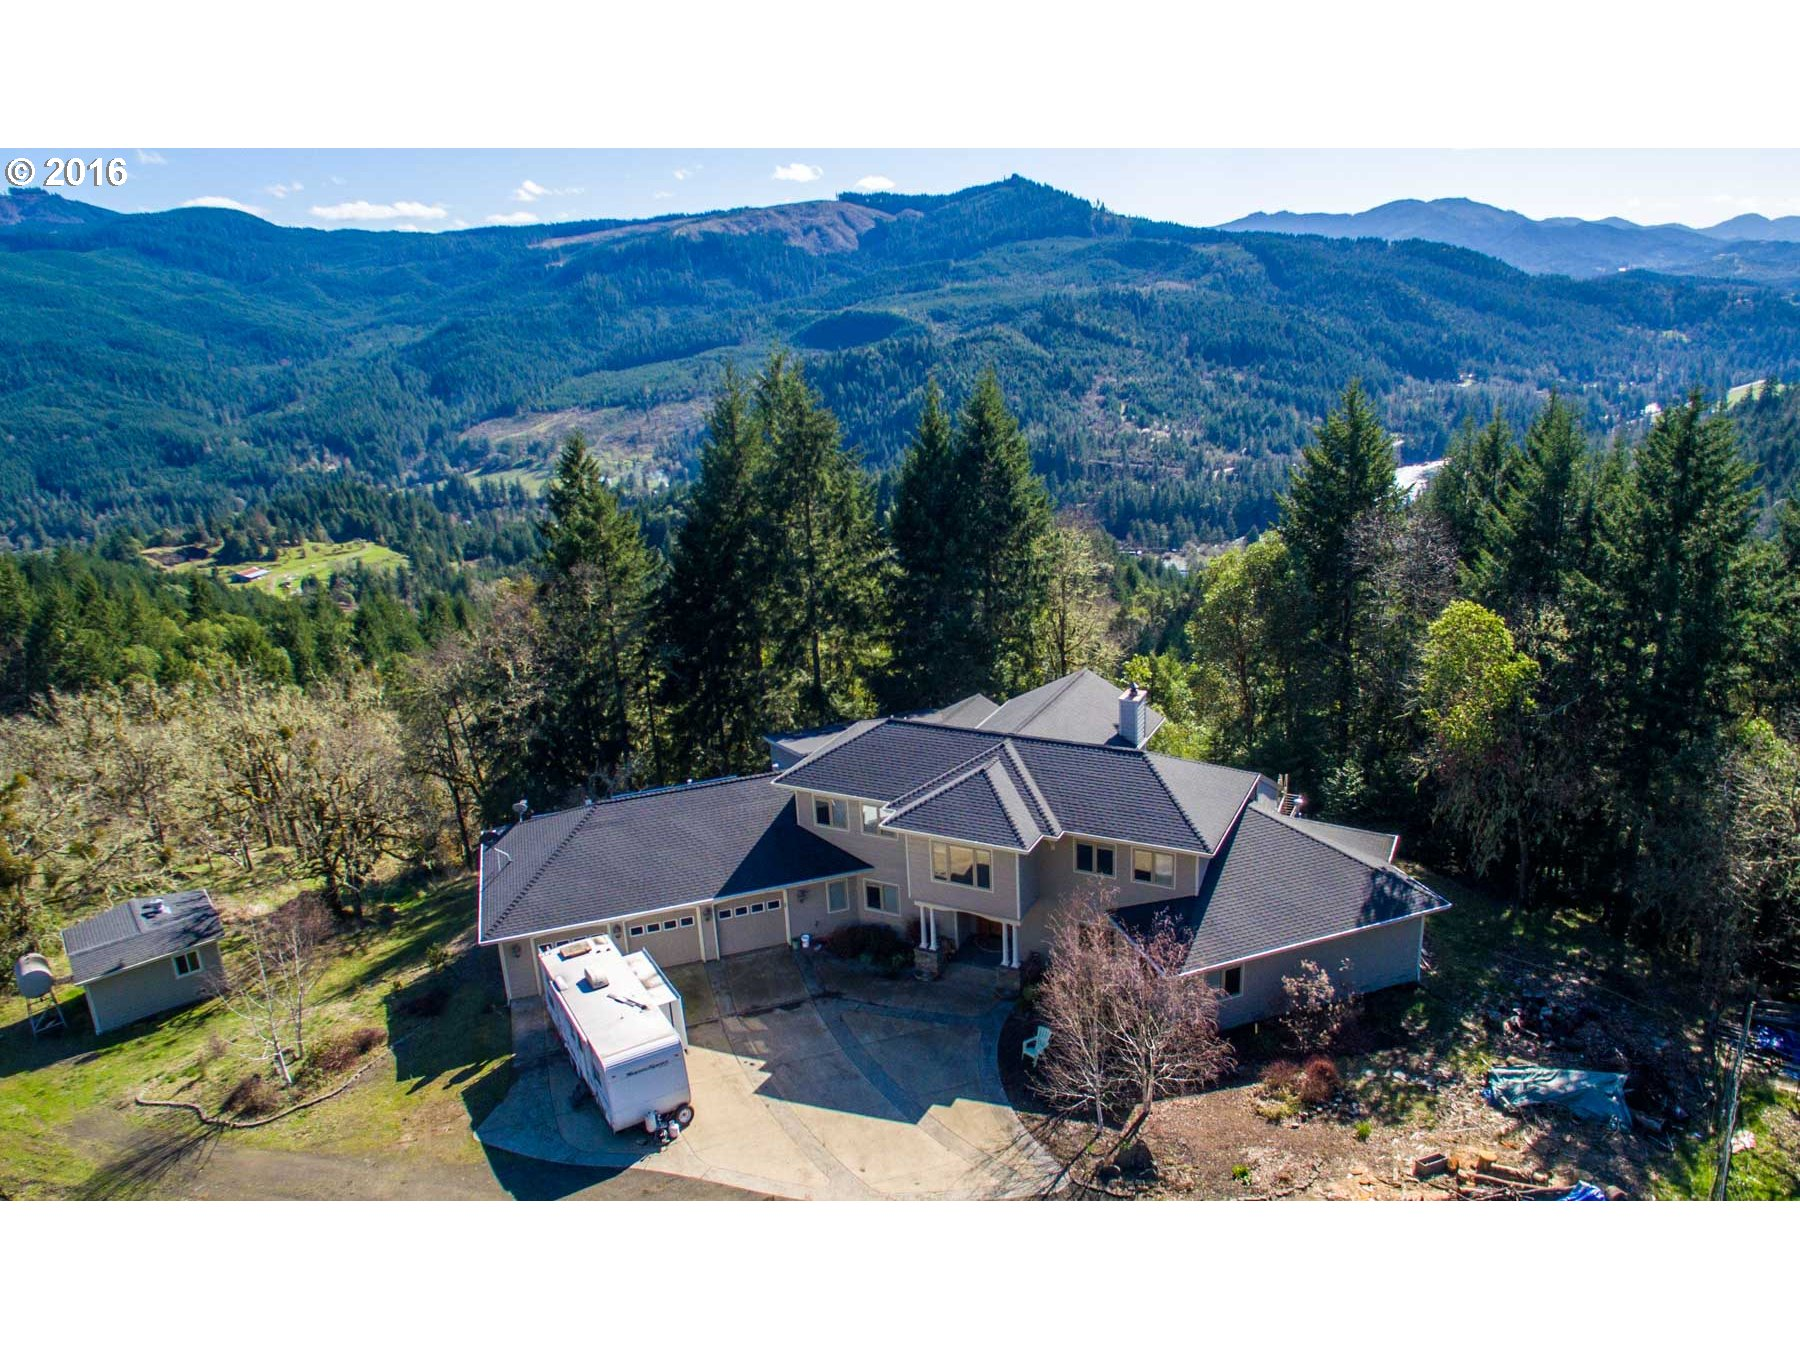 22640 N North Umpqua Hwy, Idleyld Park, OR 97447